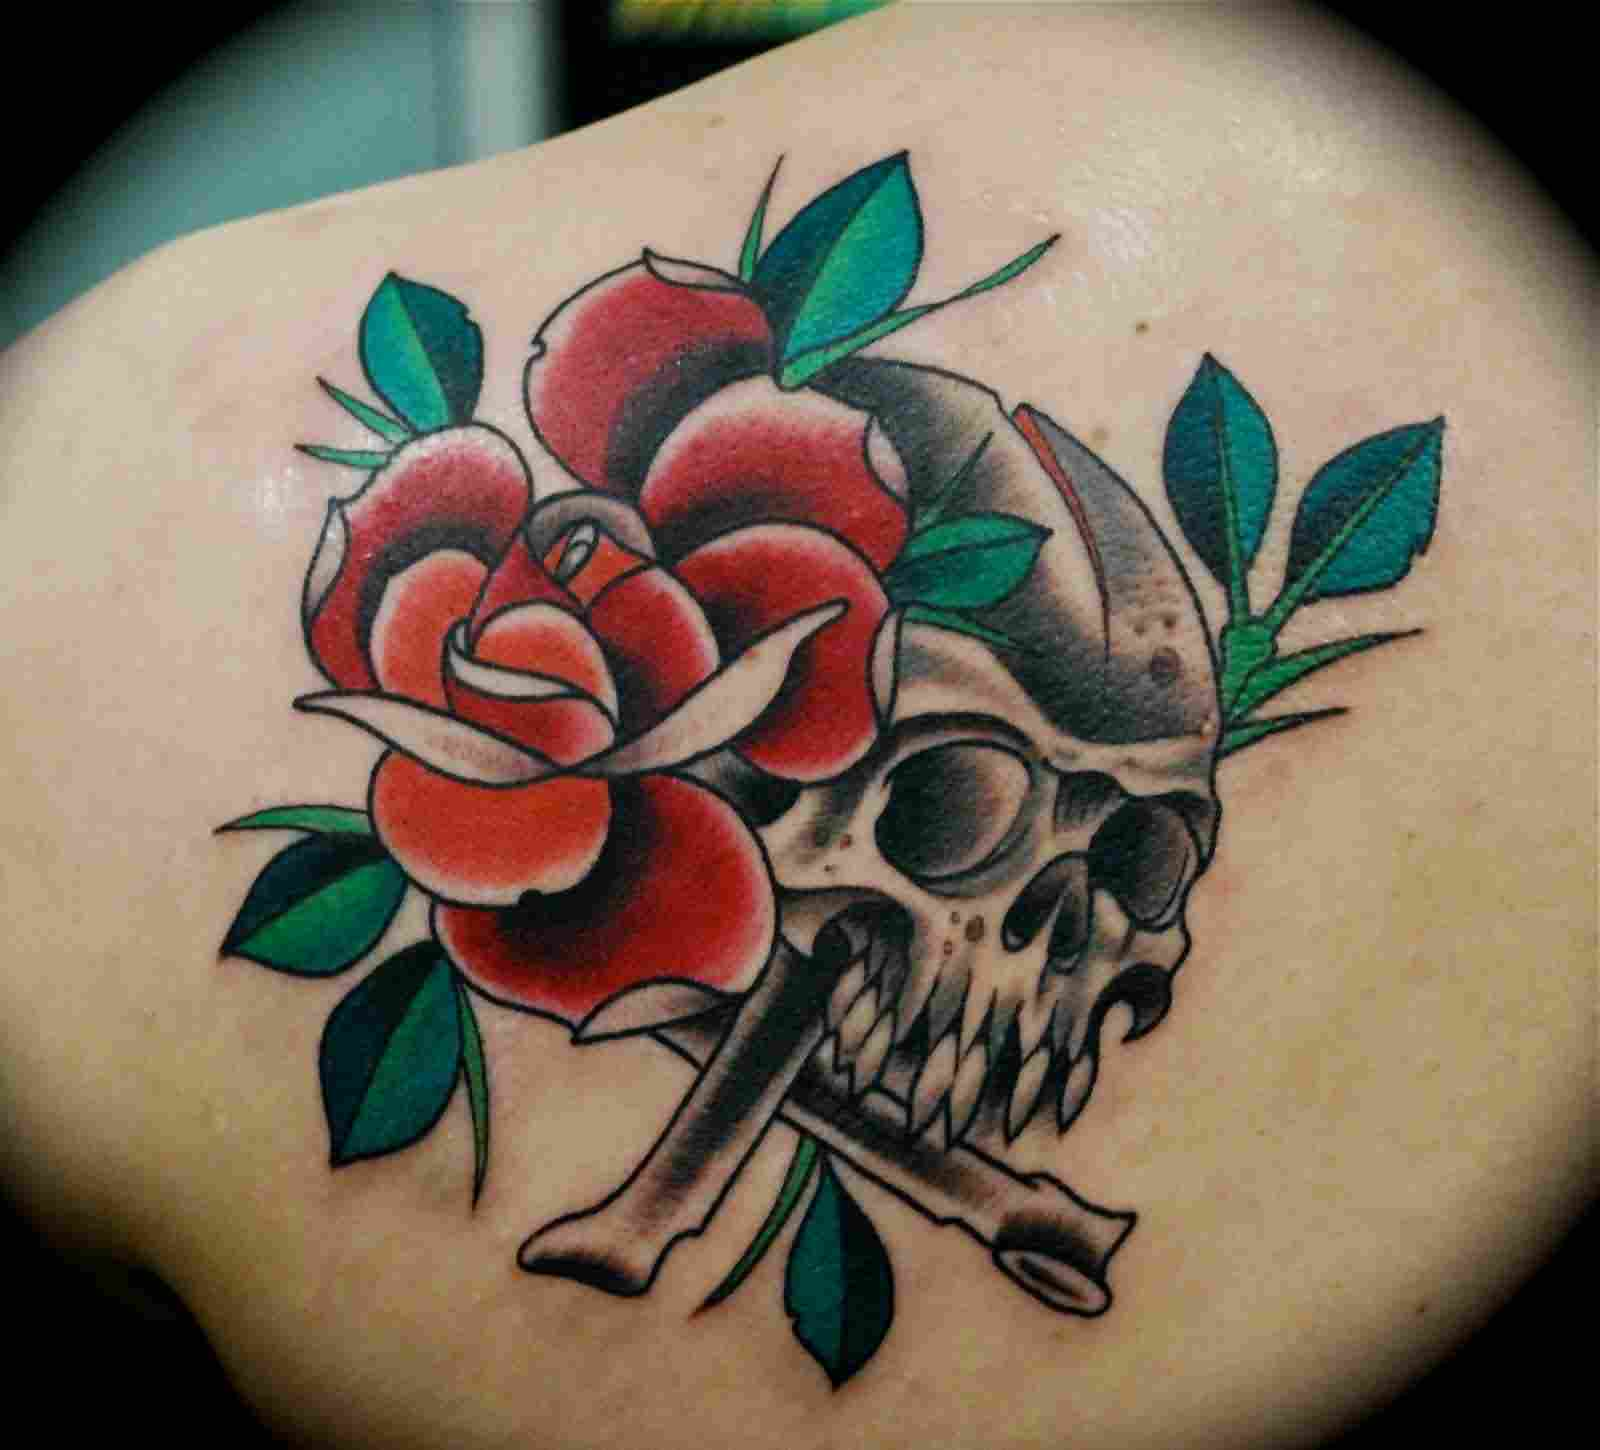 Red Rose And Skull Tattoos Image